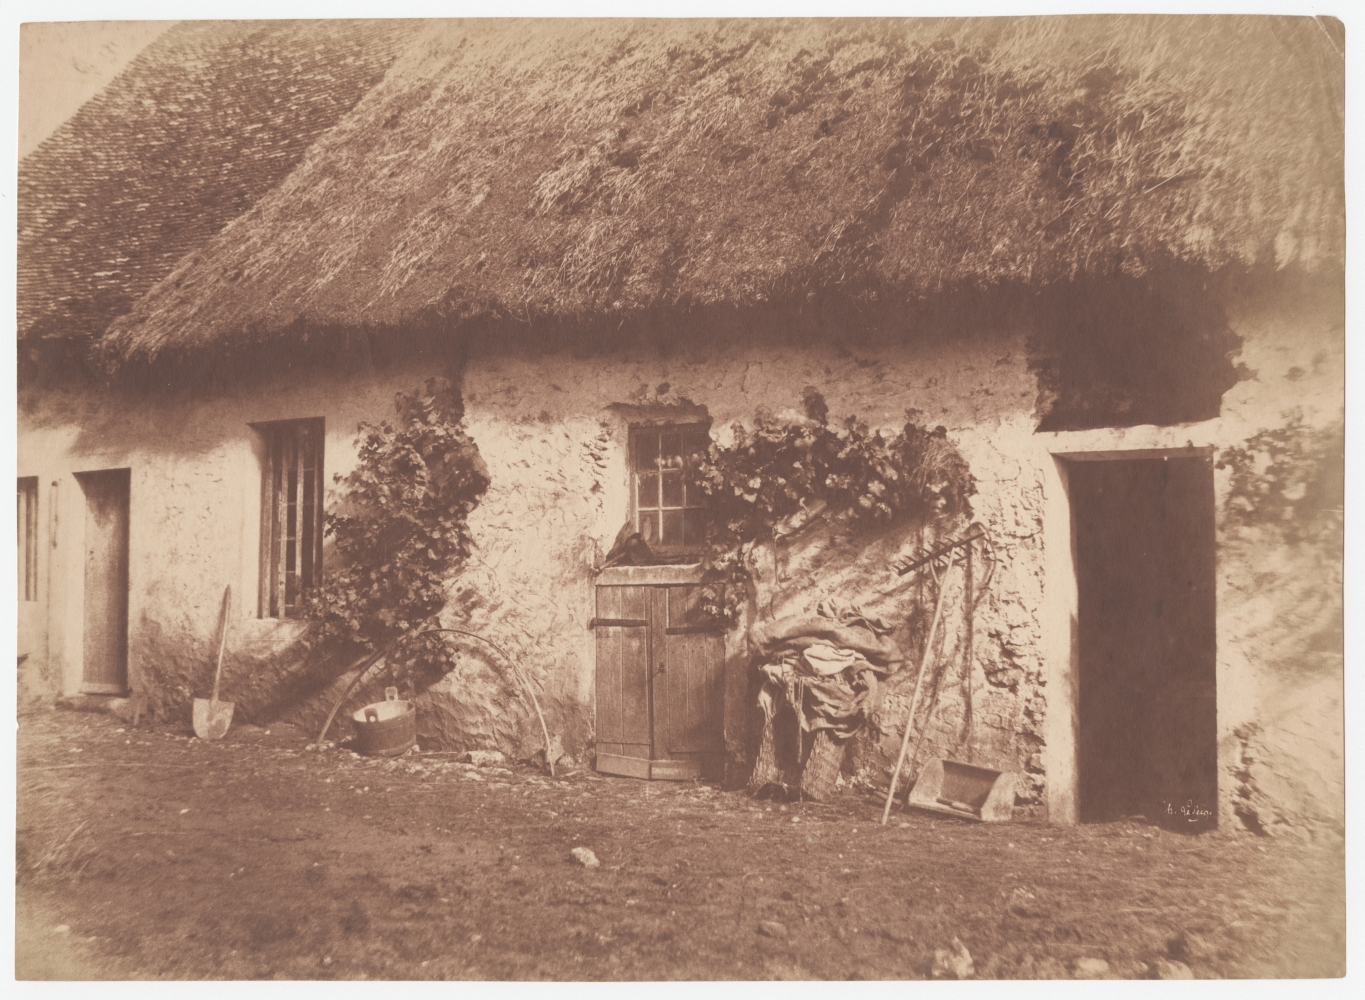 """Henri LE SECQ (French, 1818-1882) Façade d'une ferme, 1851 Salt print from a waxed paper negative 24.7 x 34.1 cm Signed in the negative. Inscribed """"X"""" lightly in pencil on verso."""